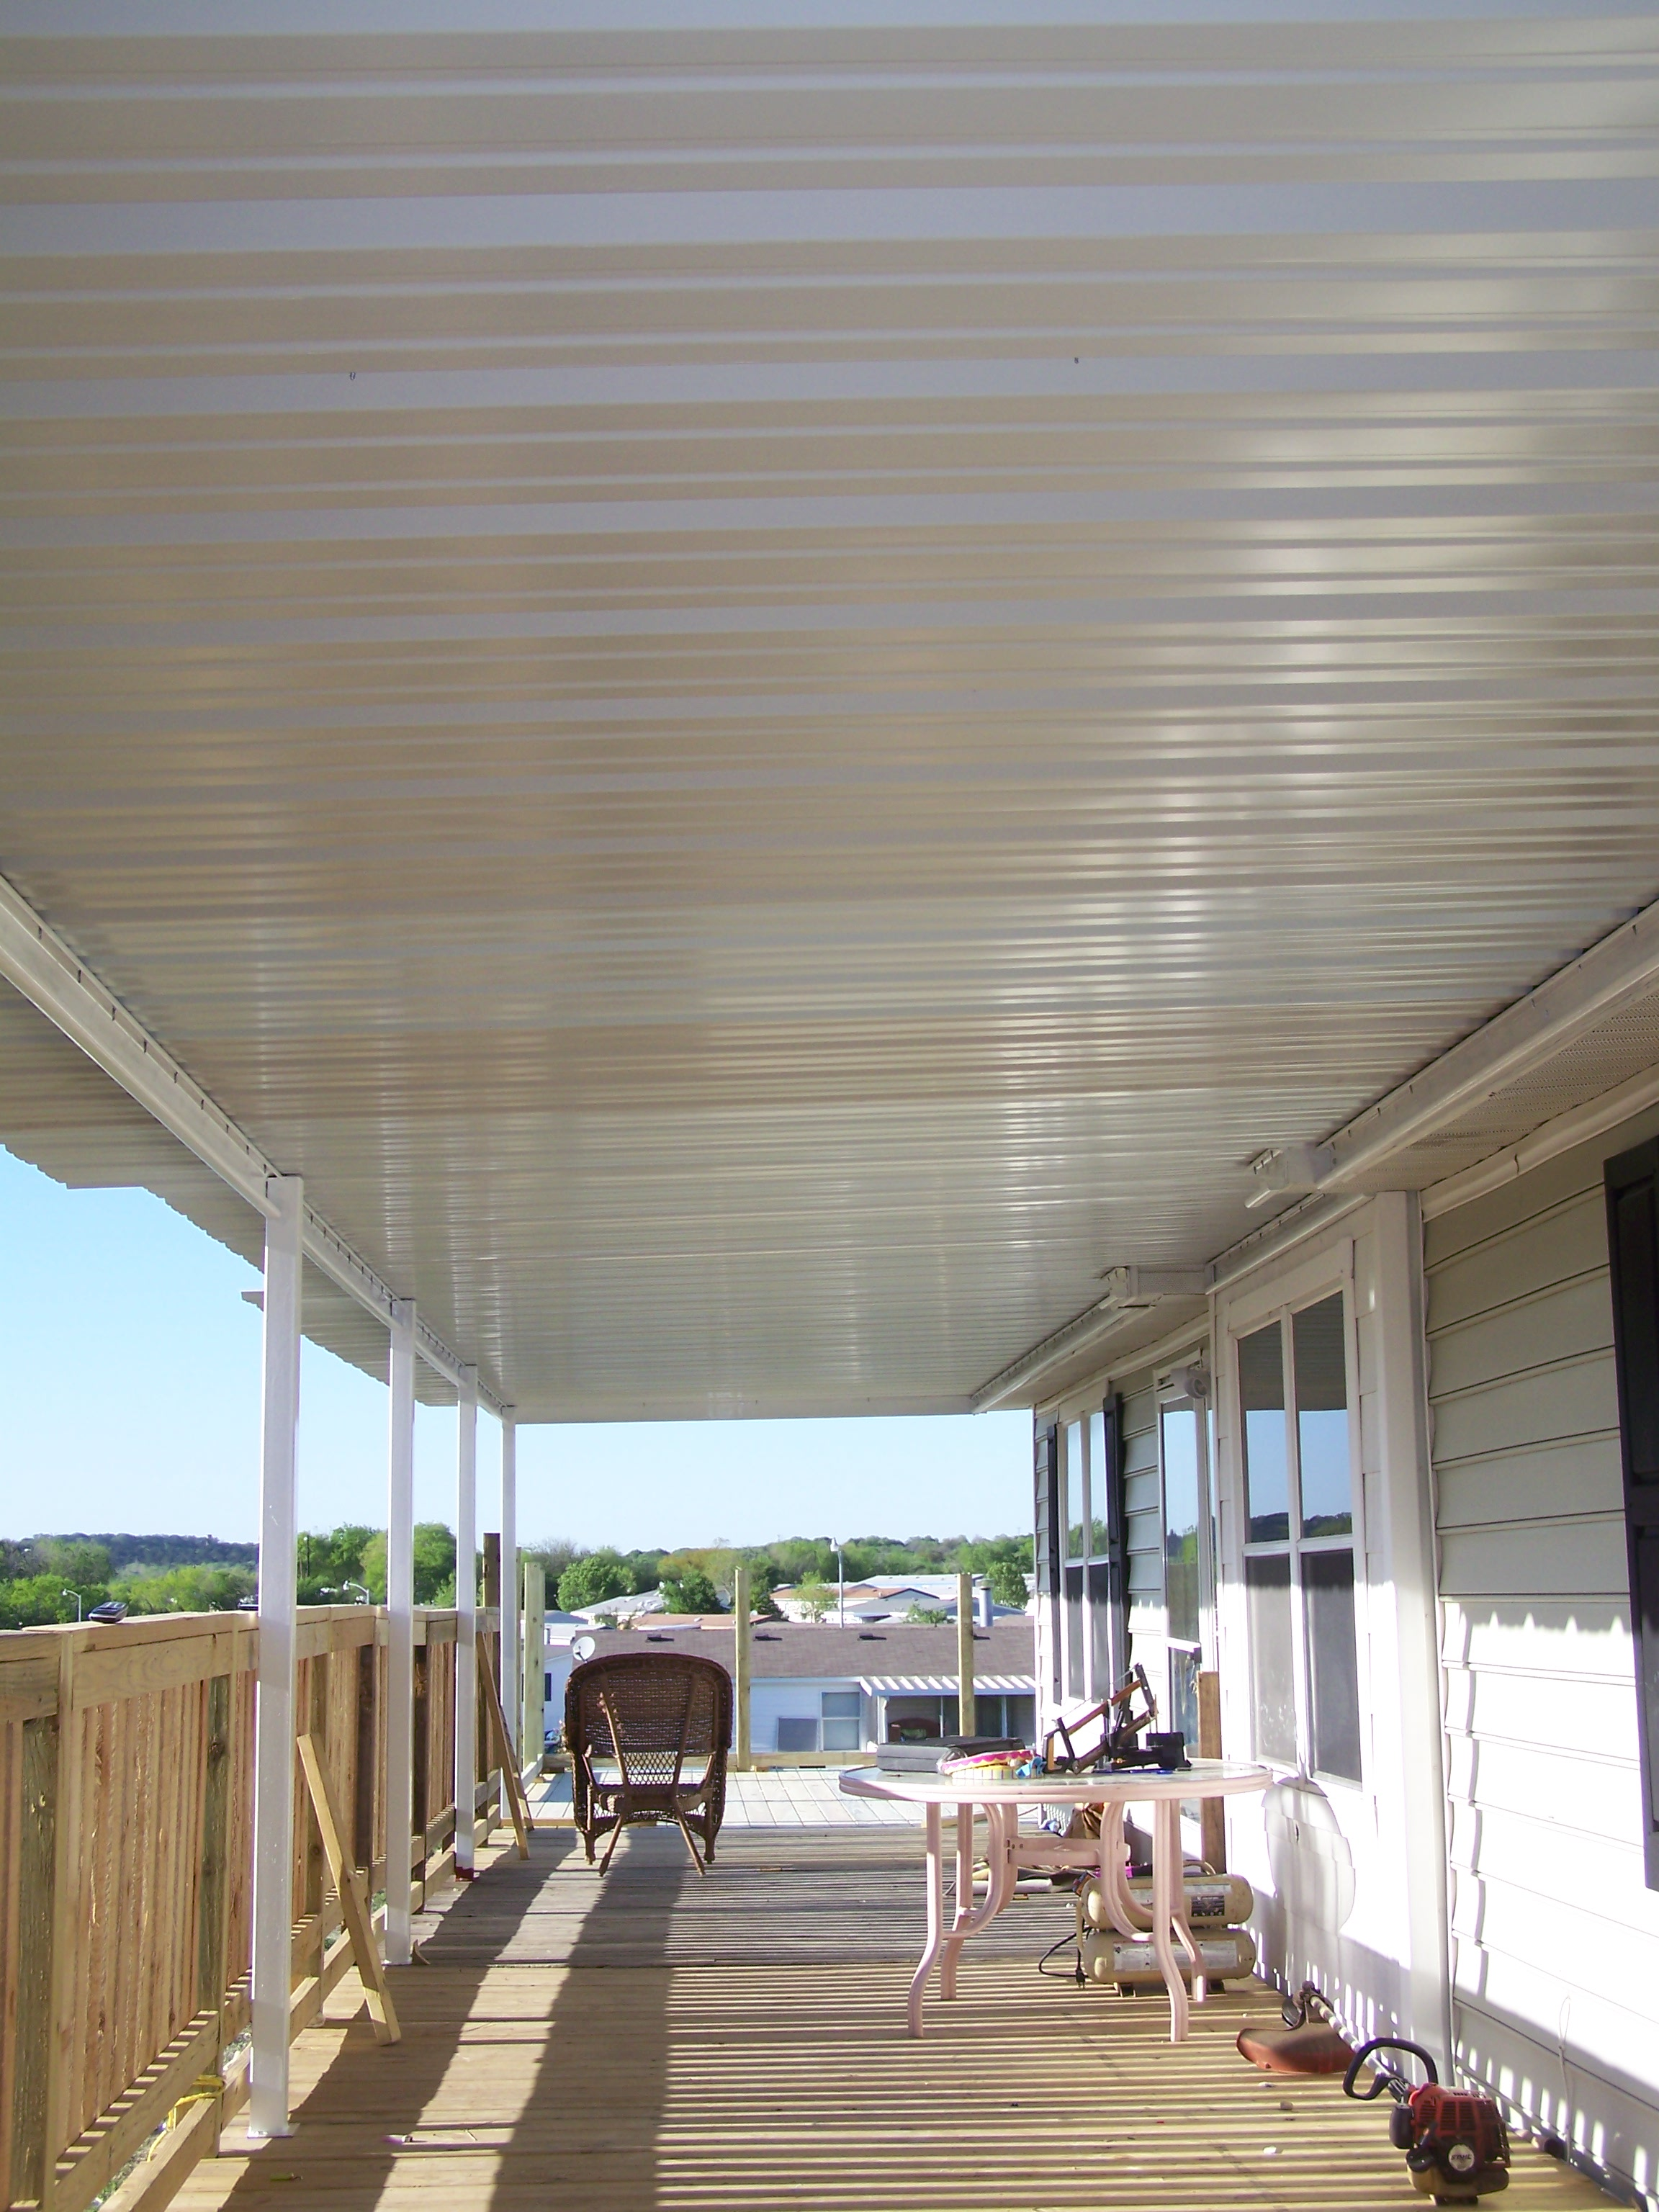 Mobile Home long awning (3) - Carport Patio Covers Awnings San ... on who makes the best carports, screen panels for carports, side-entry metal attached carports, detached carports, house attached carports, manufactured carports, prefab carports, mobile home carports california, wood built carports, homes with carports, wooden attached carports, mobile home attached garage, attached wood carports, mobile home carports and patio roofs, mobile home aluminum awnings carports, custom attached carports, affordable carports, mobile home attached to house, colonial carports, double wide mobile home carports,